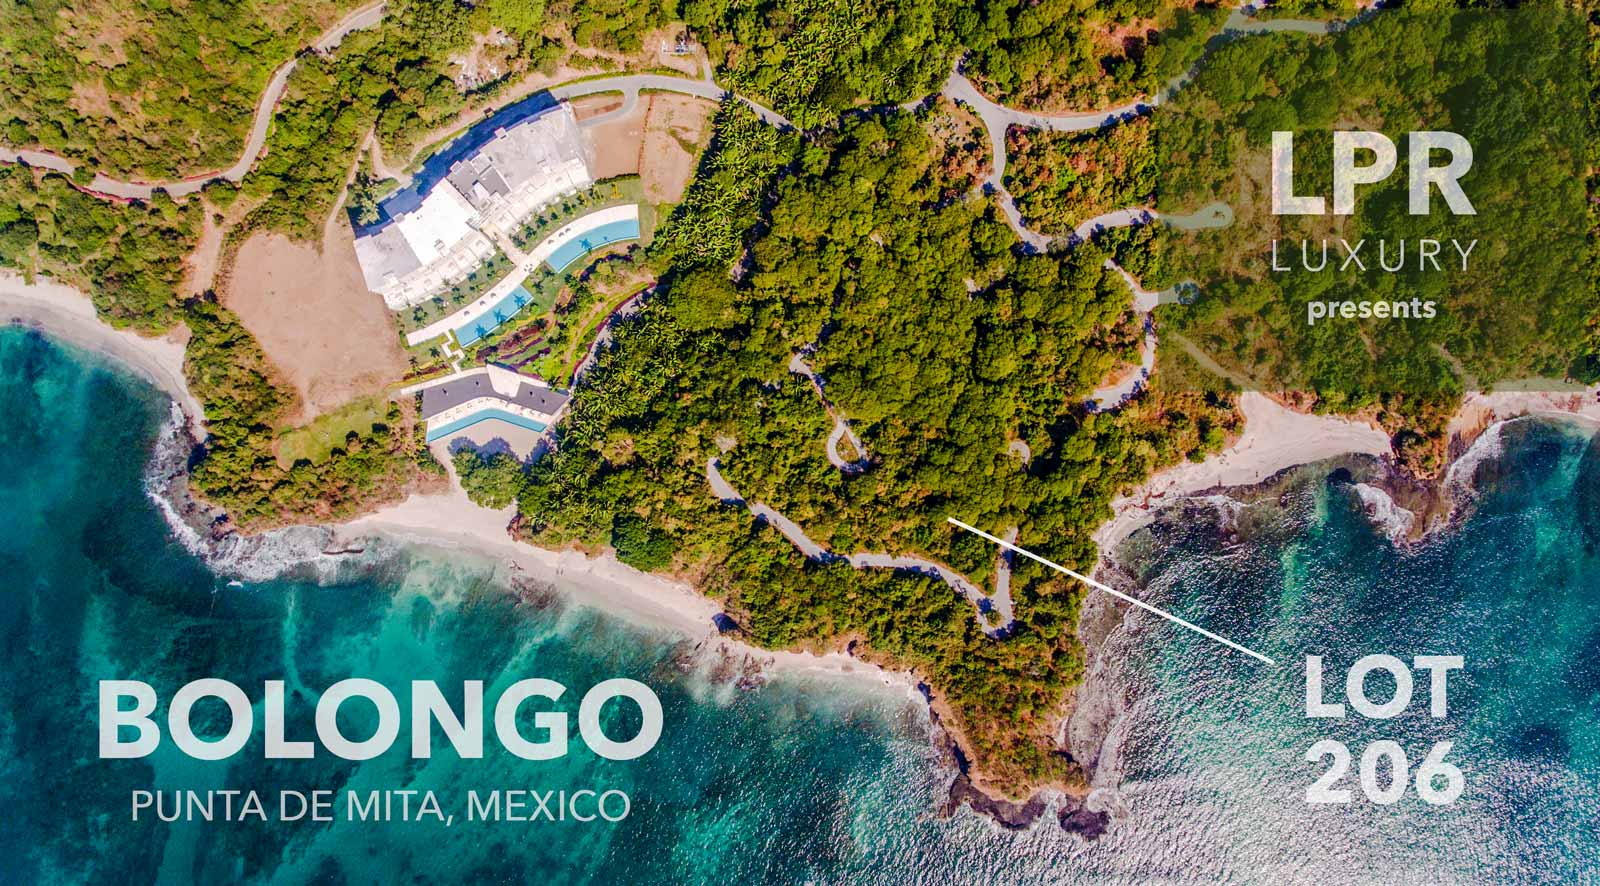 Bolongo lot 206 - Punta de Mita real estate for sale - Riviera Nayarit, Mexico